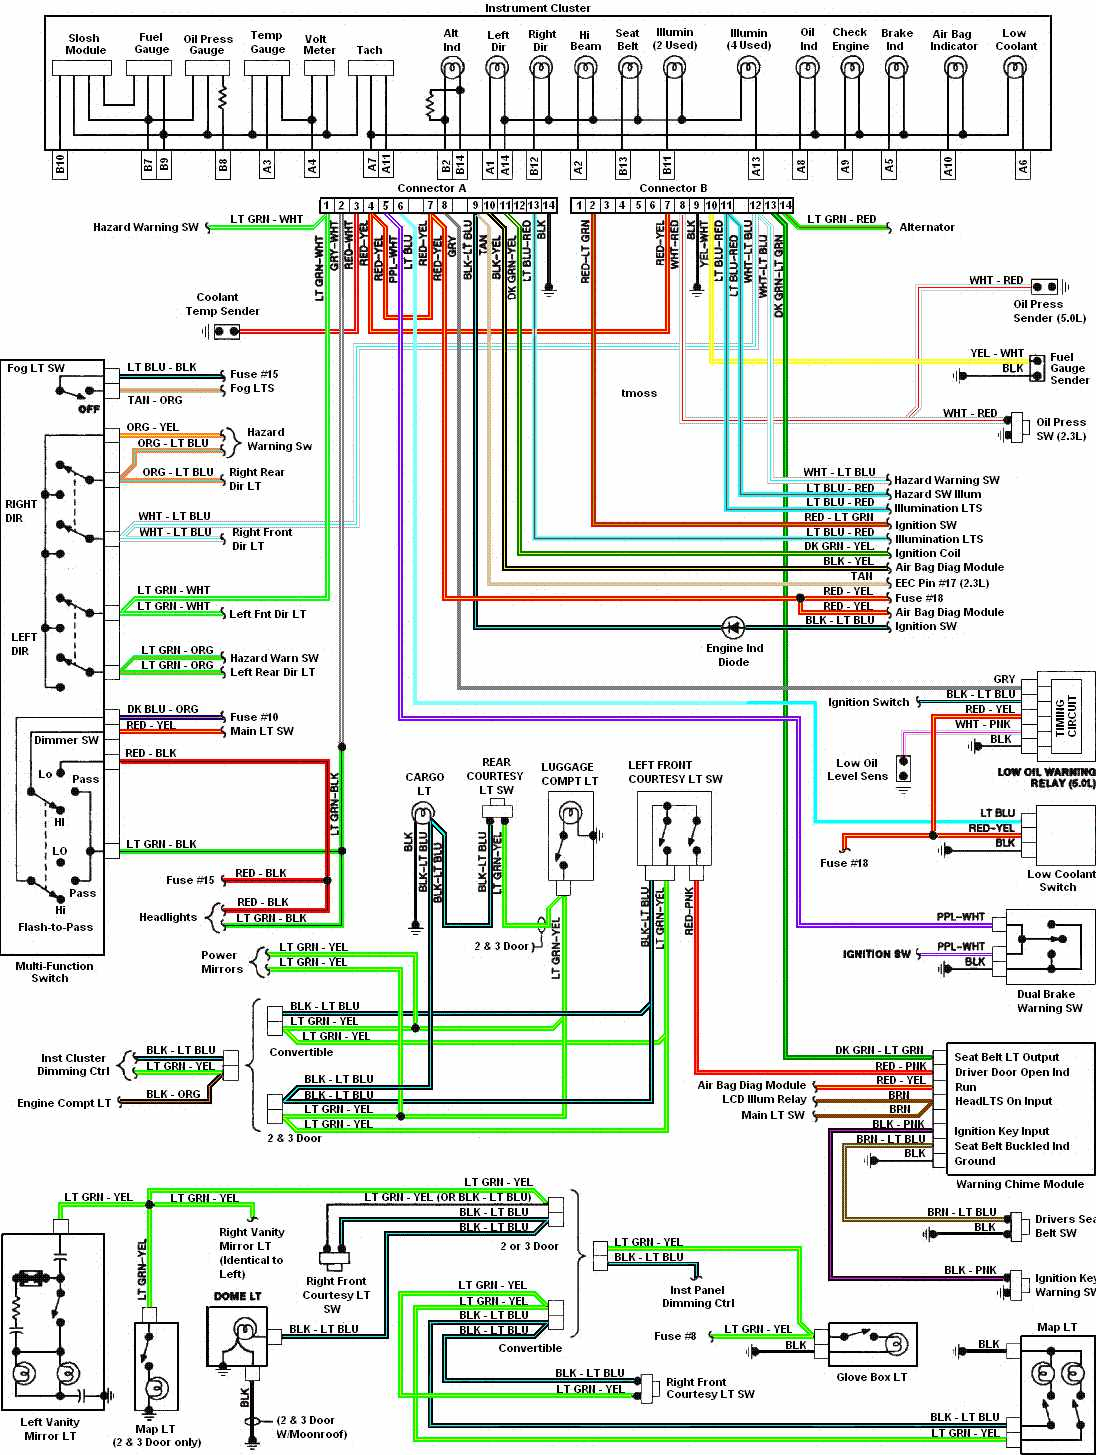 Mustang Wiring Harness Diagram - Data Wiring Diagram Detailed - Mustang Trailer Wiring Diagram